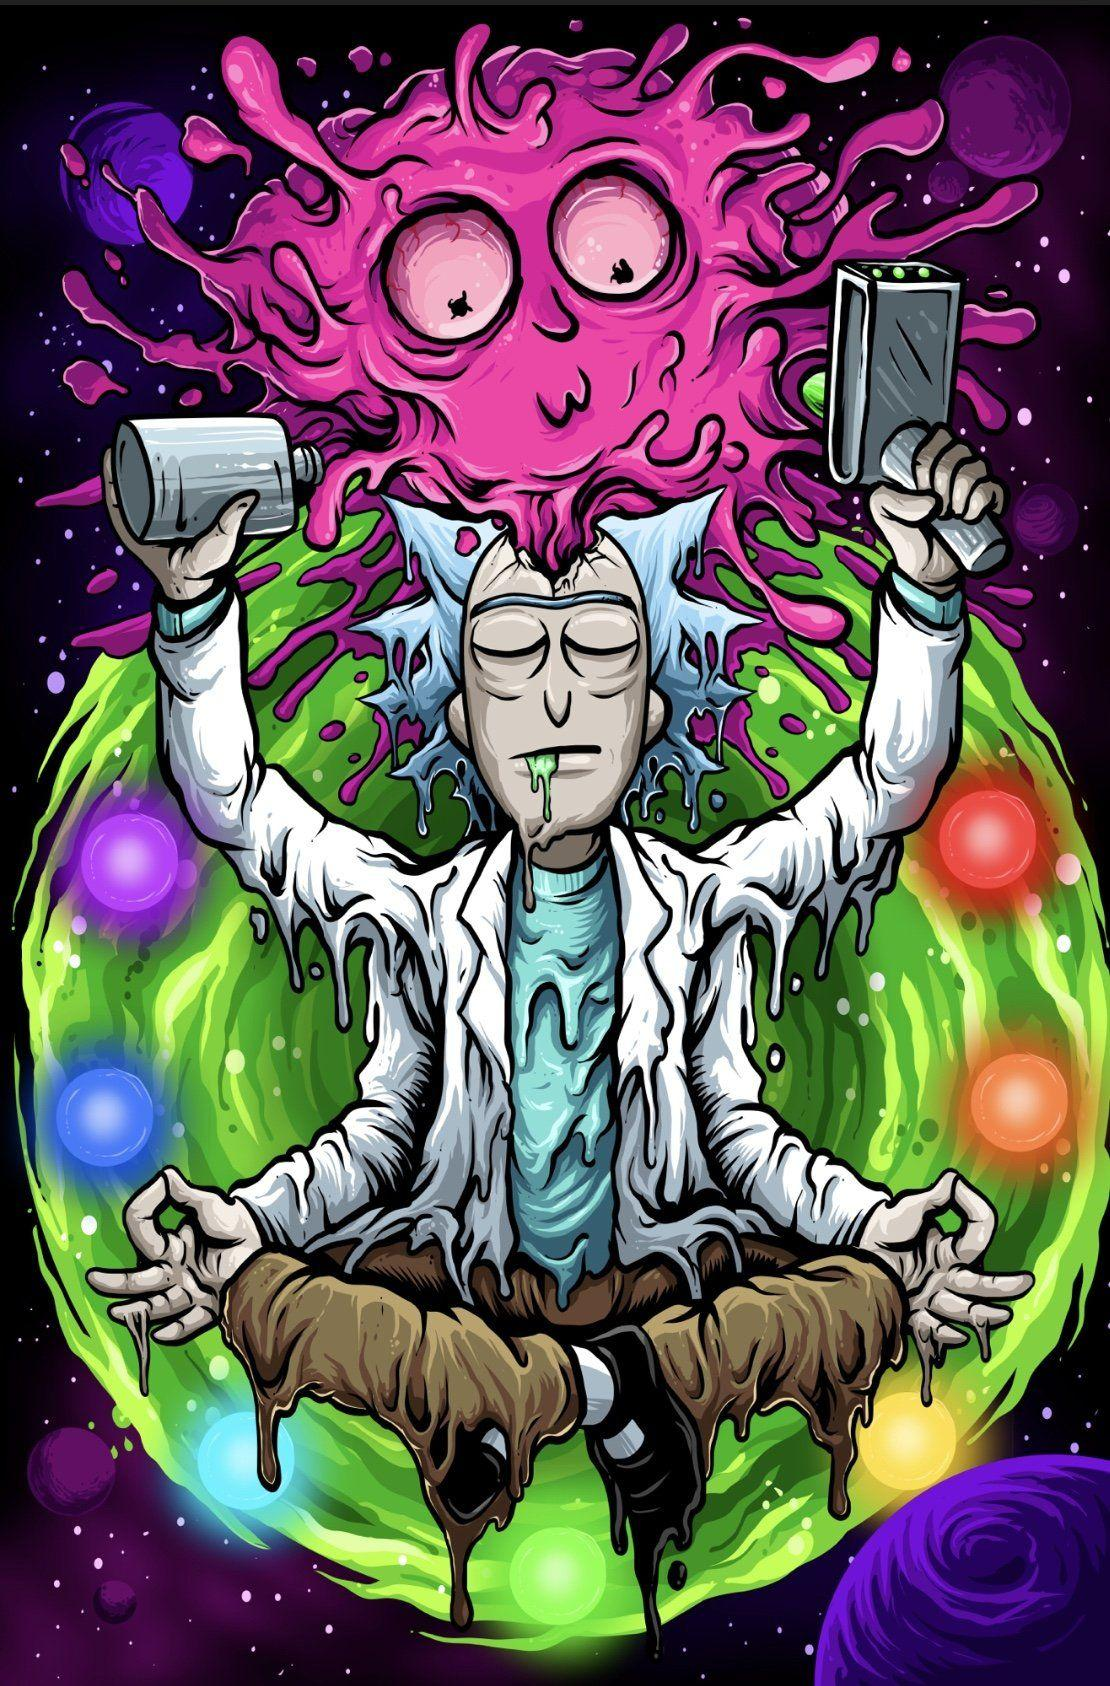 Tumblr Psychedelic Rick And Morty Wallpapers - Wallpaper Cave